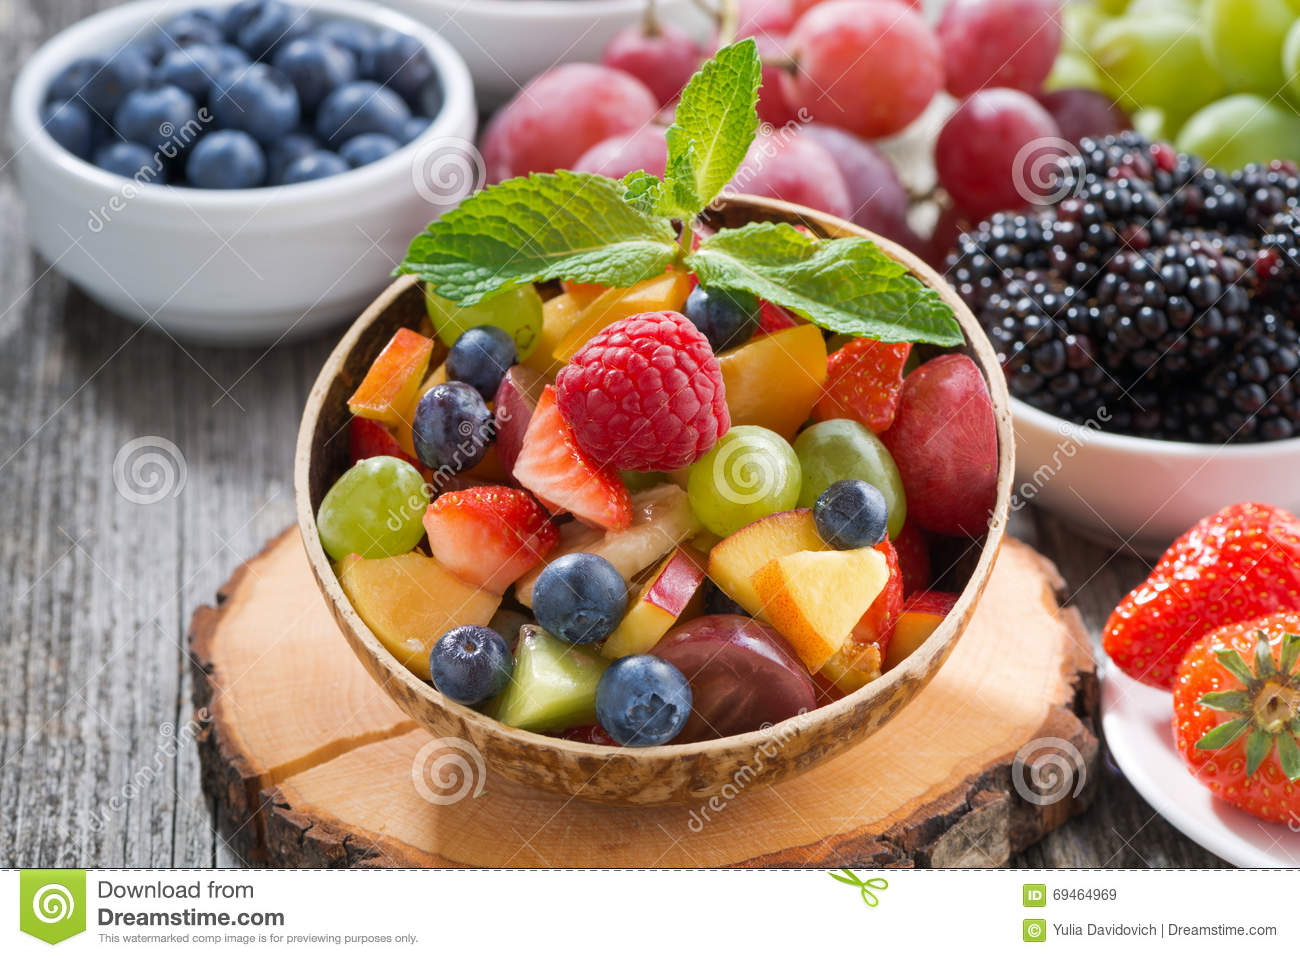 Download Fruit Salad In A Bamboo Bowl And Fresh Berries, Close-up Stock Image - Image of mint, grapes: 69464969